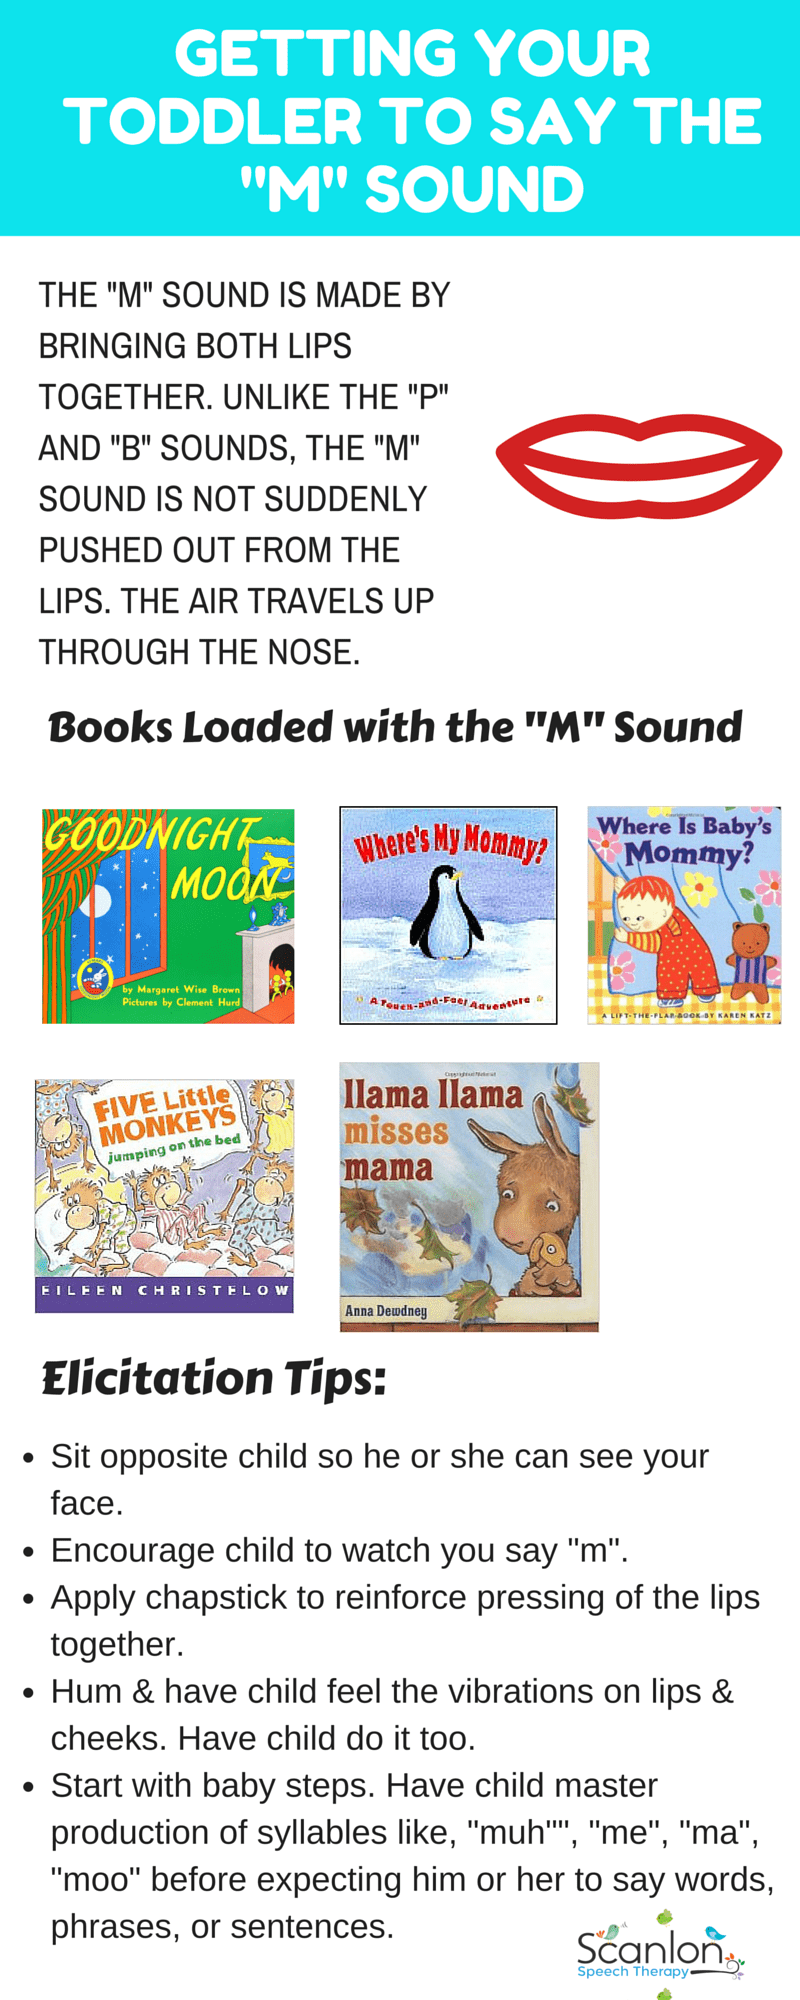 Getting Toddler to Say M Sound REVISED 8:26